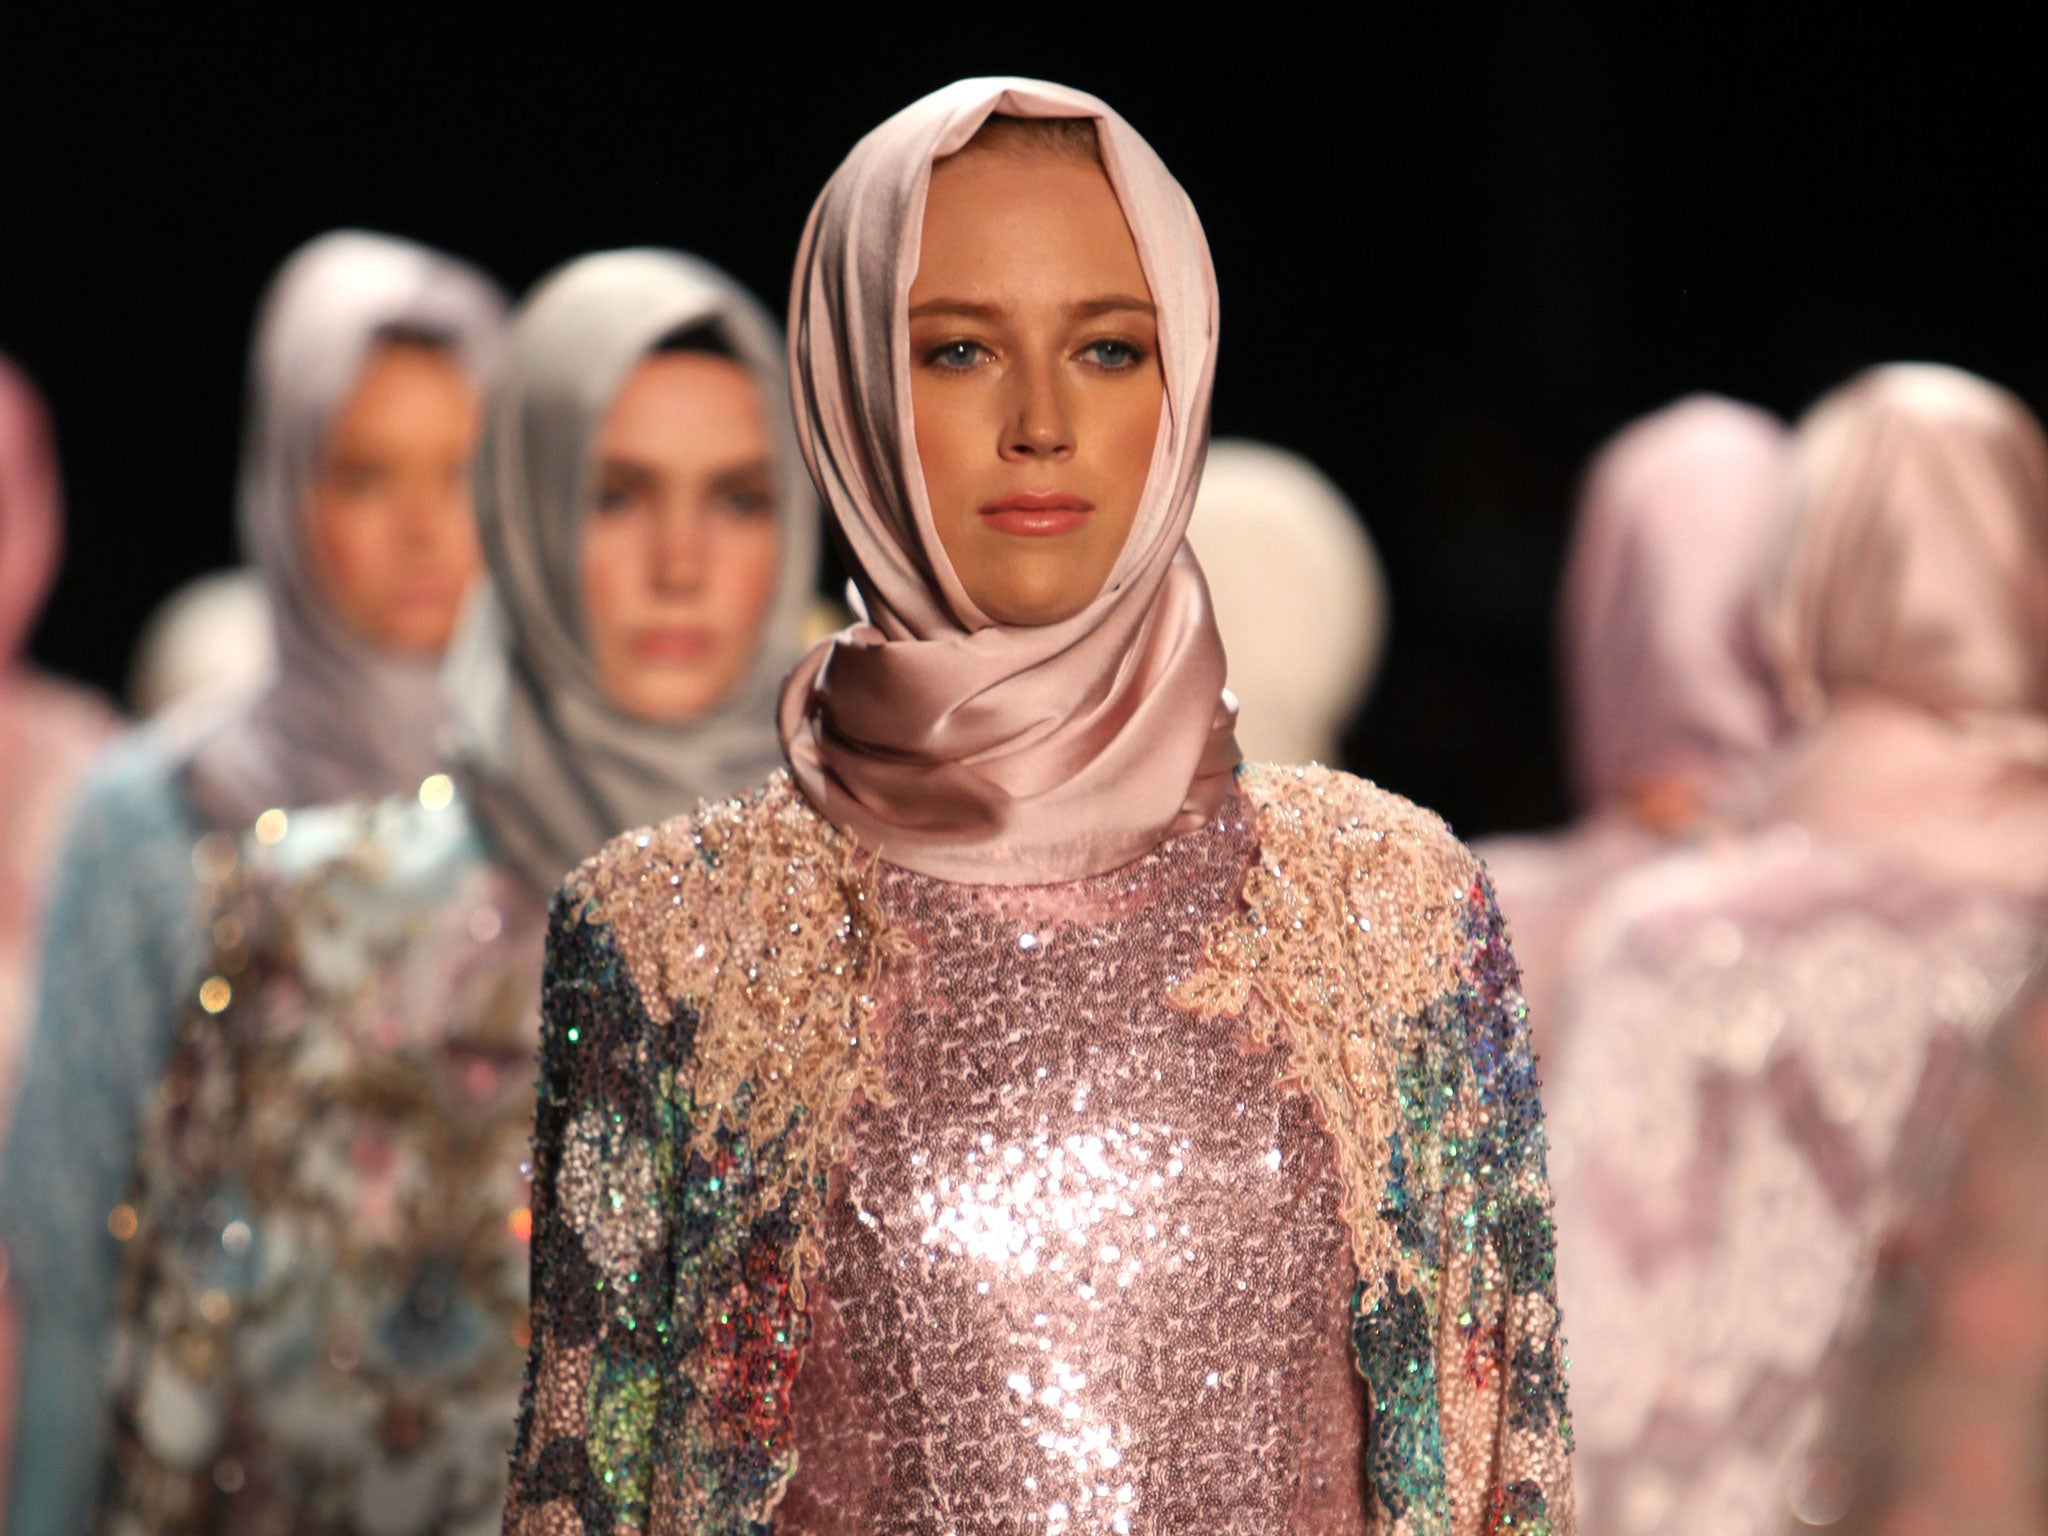 Muslim Fashion Designer Makes History With Hijab